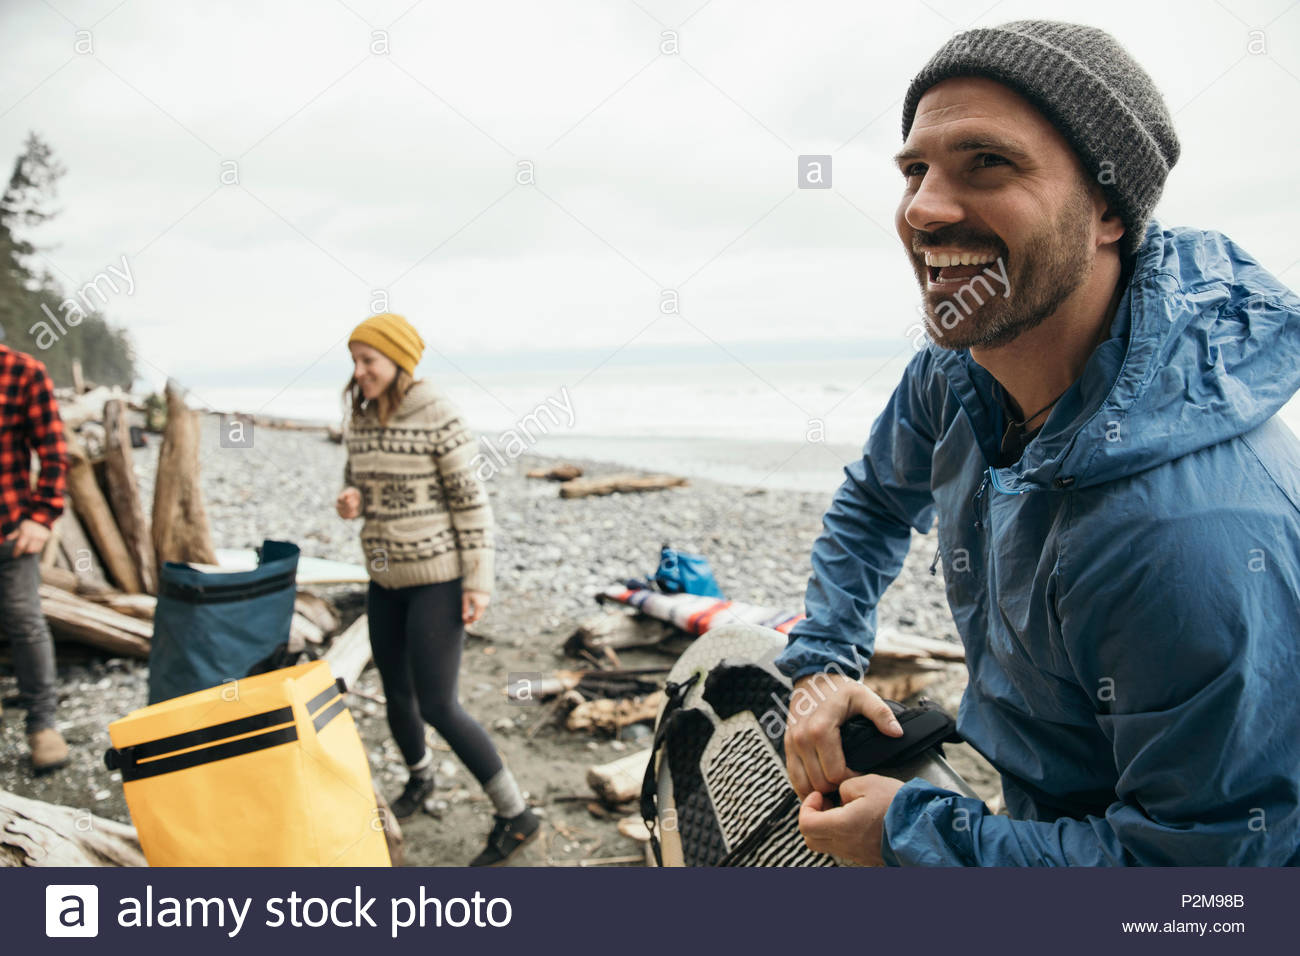 Smiling man enjoying weekend surfing getaway with friends on rugged beach - Stock Image